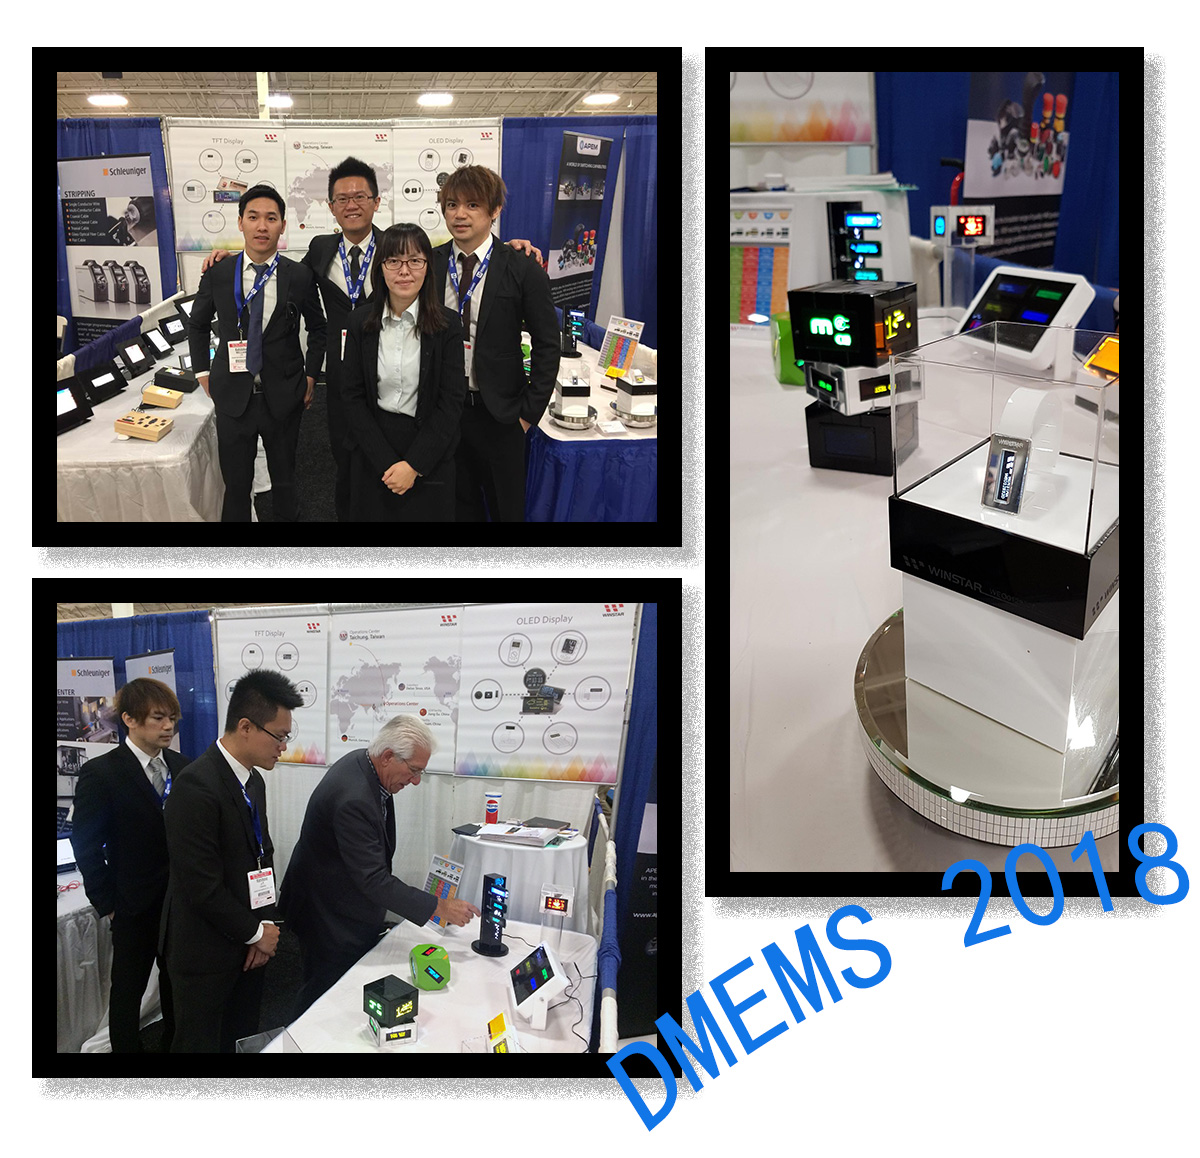 DMEMS 2018, CA - Exhibition Highlights - Winstar